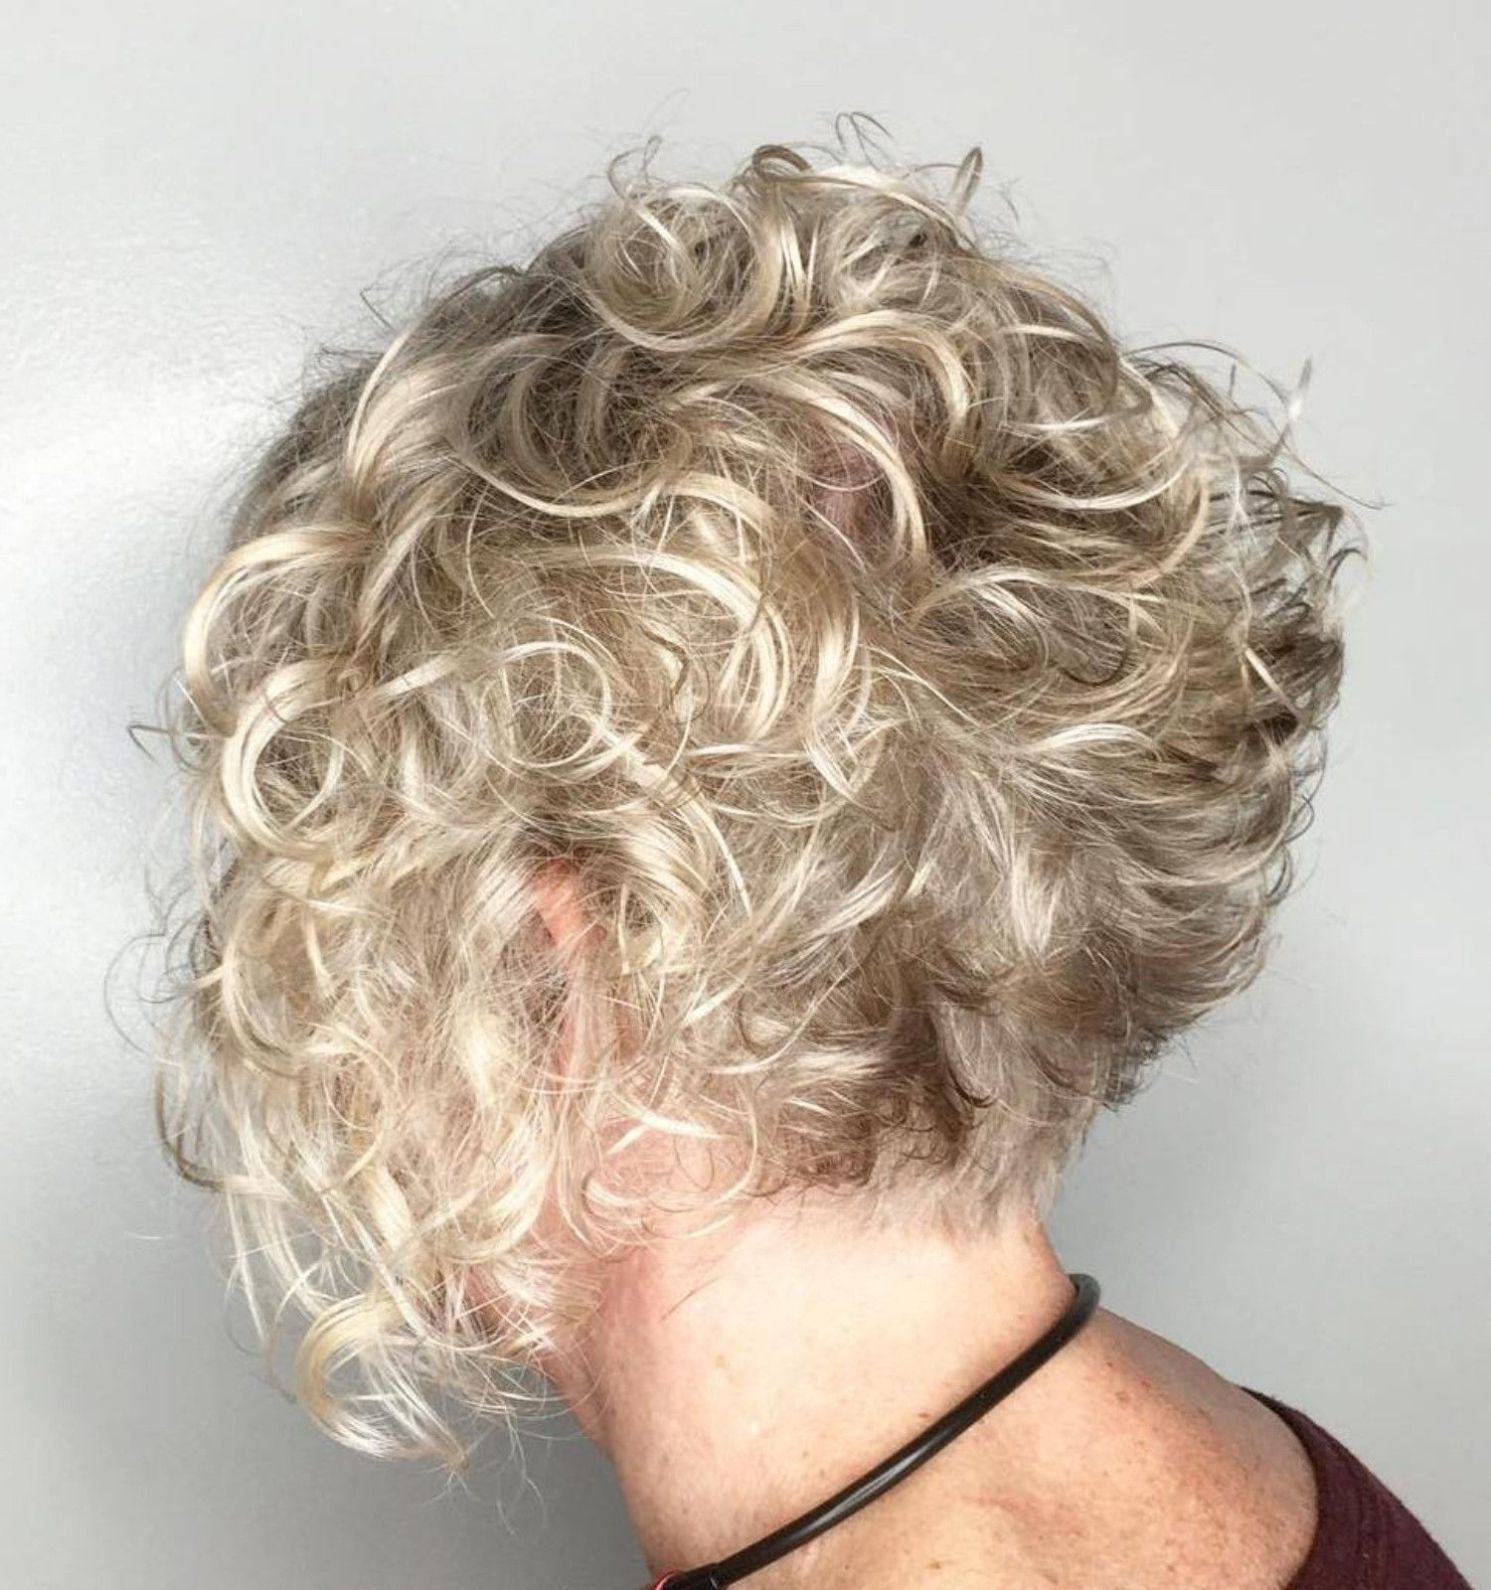 90 Classy And Simple Short Hairstyles For Women Over 50 Short Curly Hairstyles For Women Short Curly Haircuts Curly Hair Styles Naturally